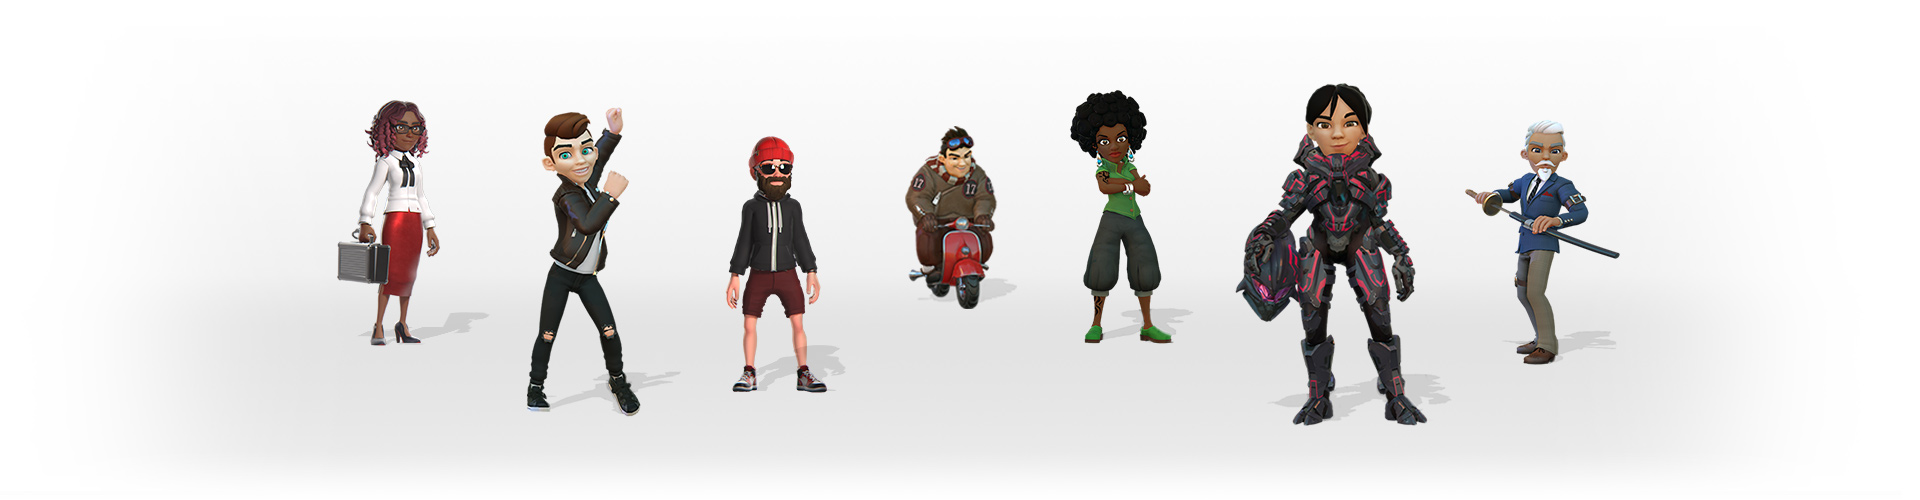 Avatars on Xbox Live